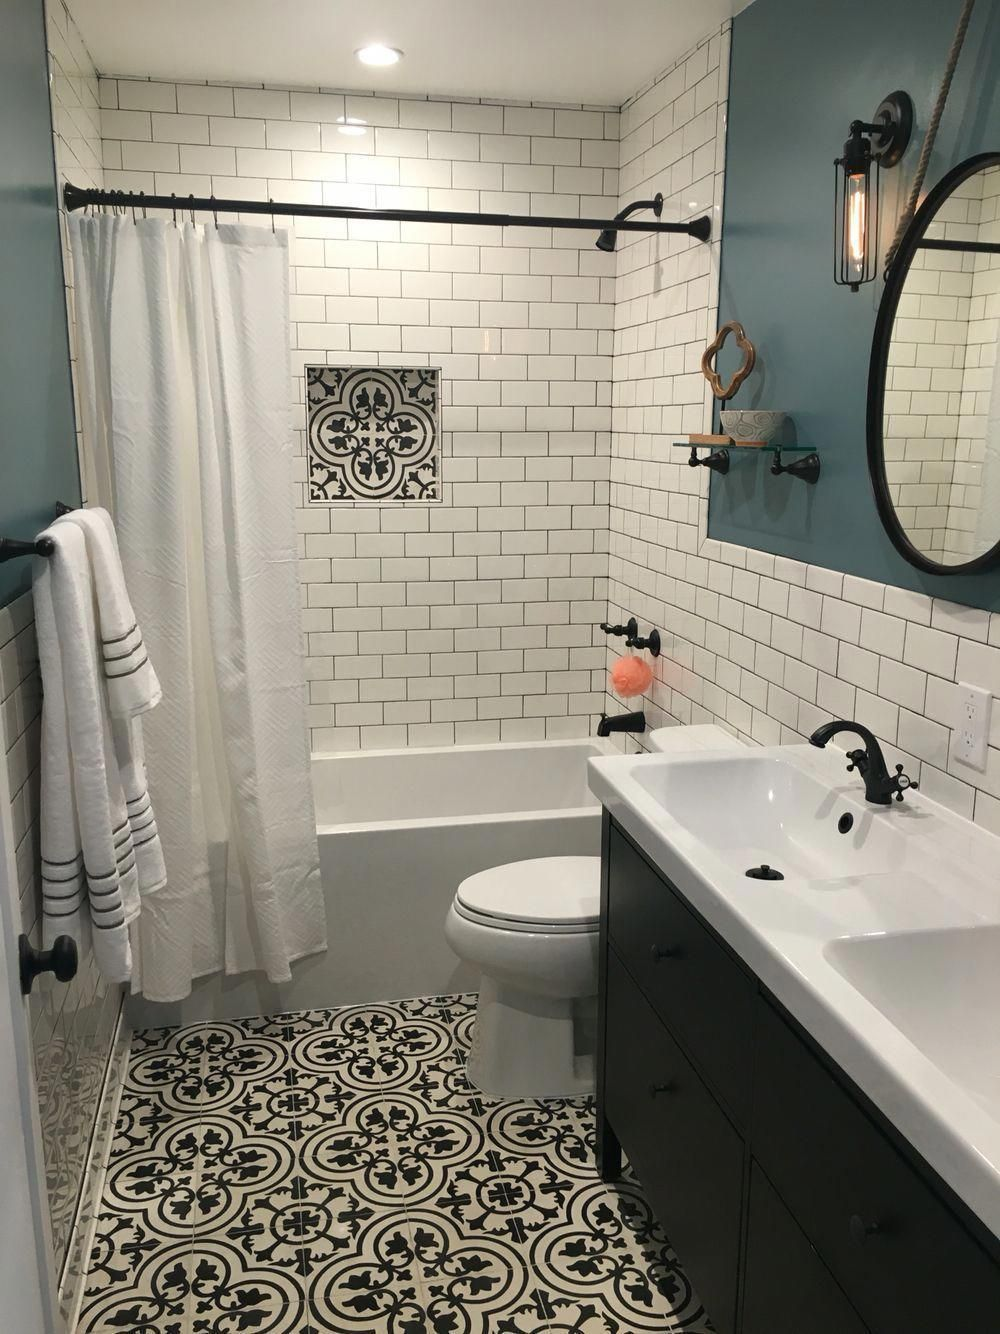 Most Por Small Bathroom Remodel Ideas On A Budget In 2018 This Beautiful Look Was Created With Coo Bathrooms Master Decor